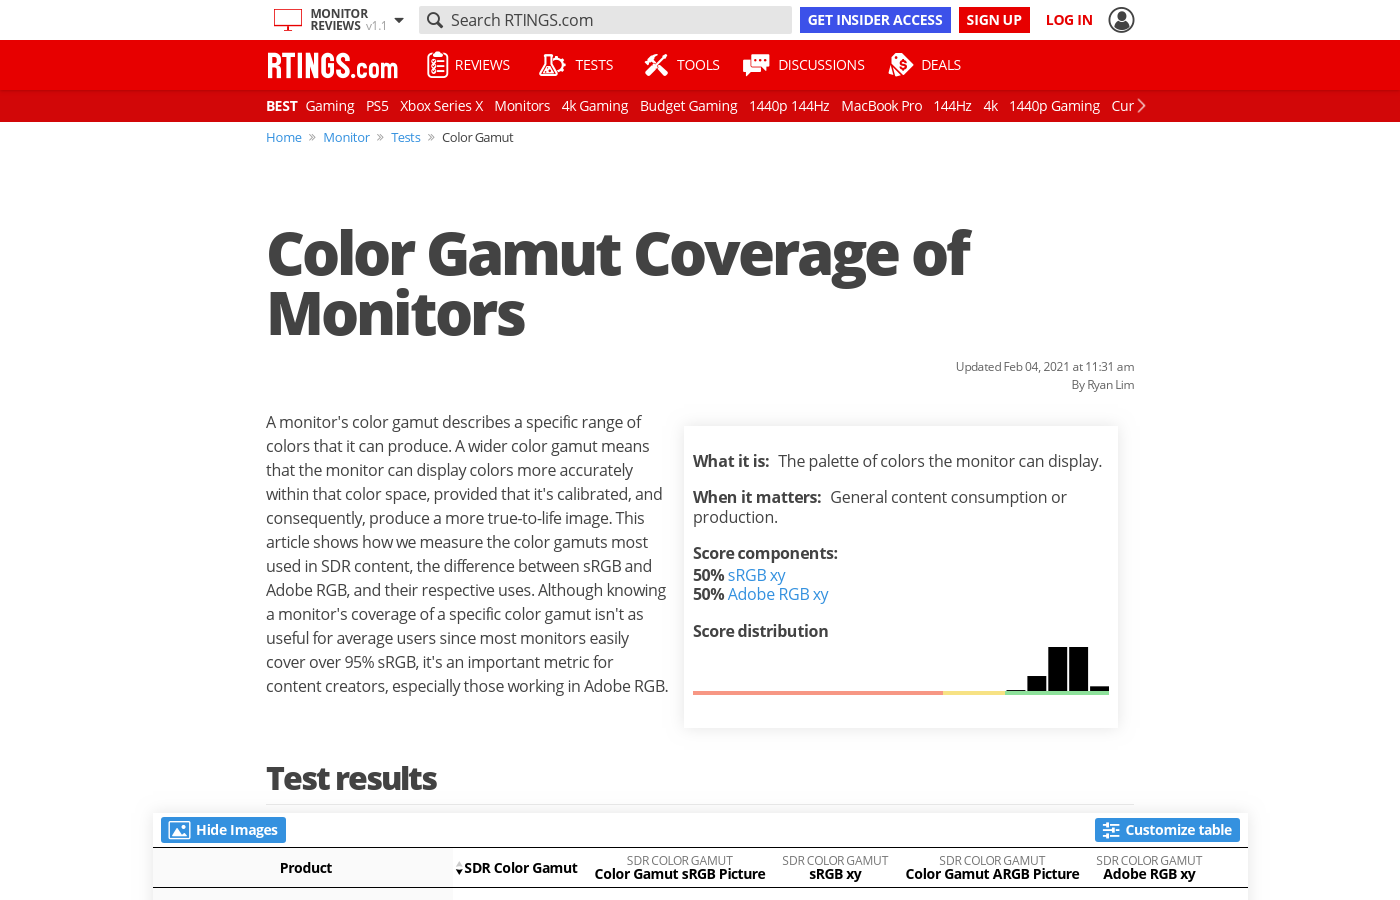 Color Gamut Coverage of Monitors